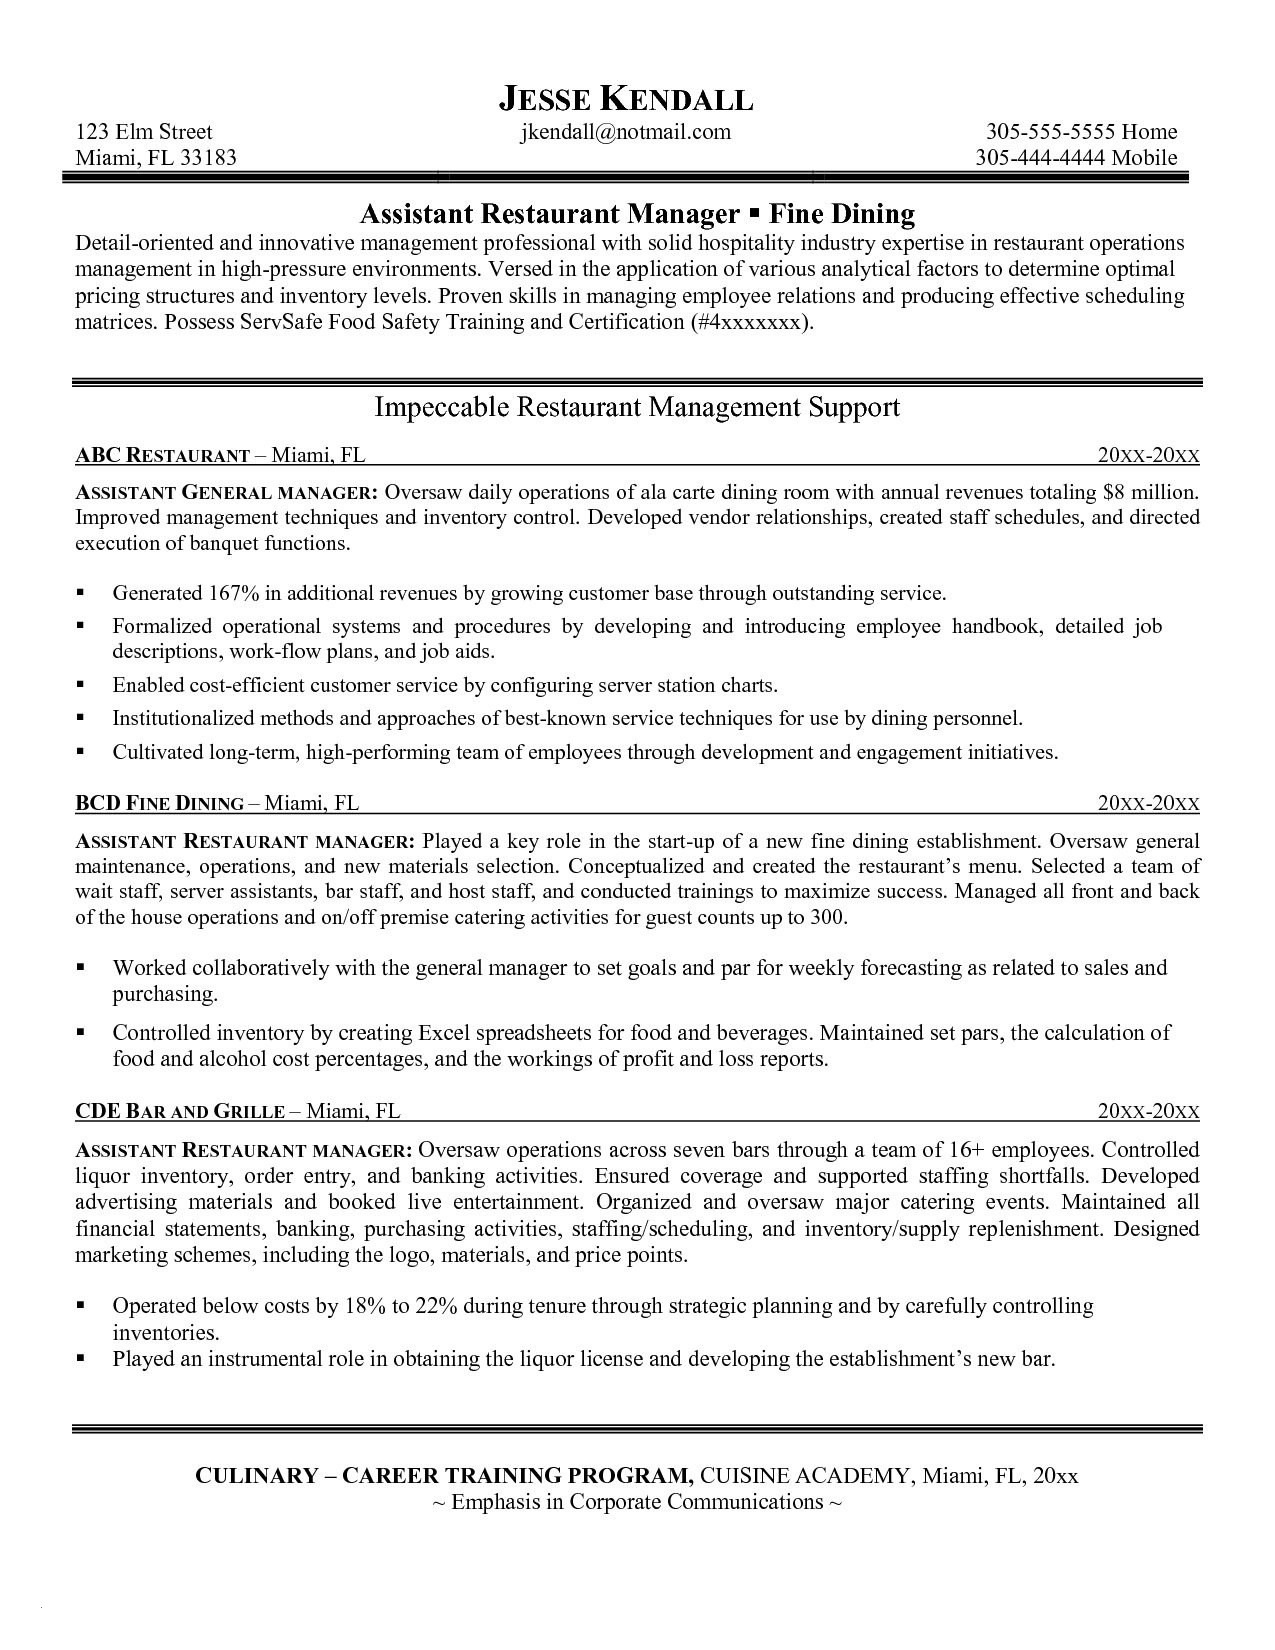 Food Manager Resume - Restaurant General Manager Resume Paragraphrewriter